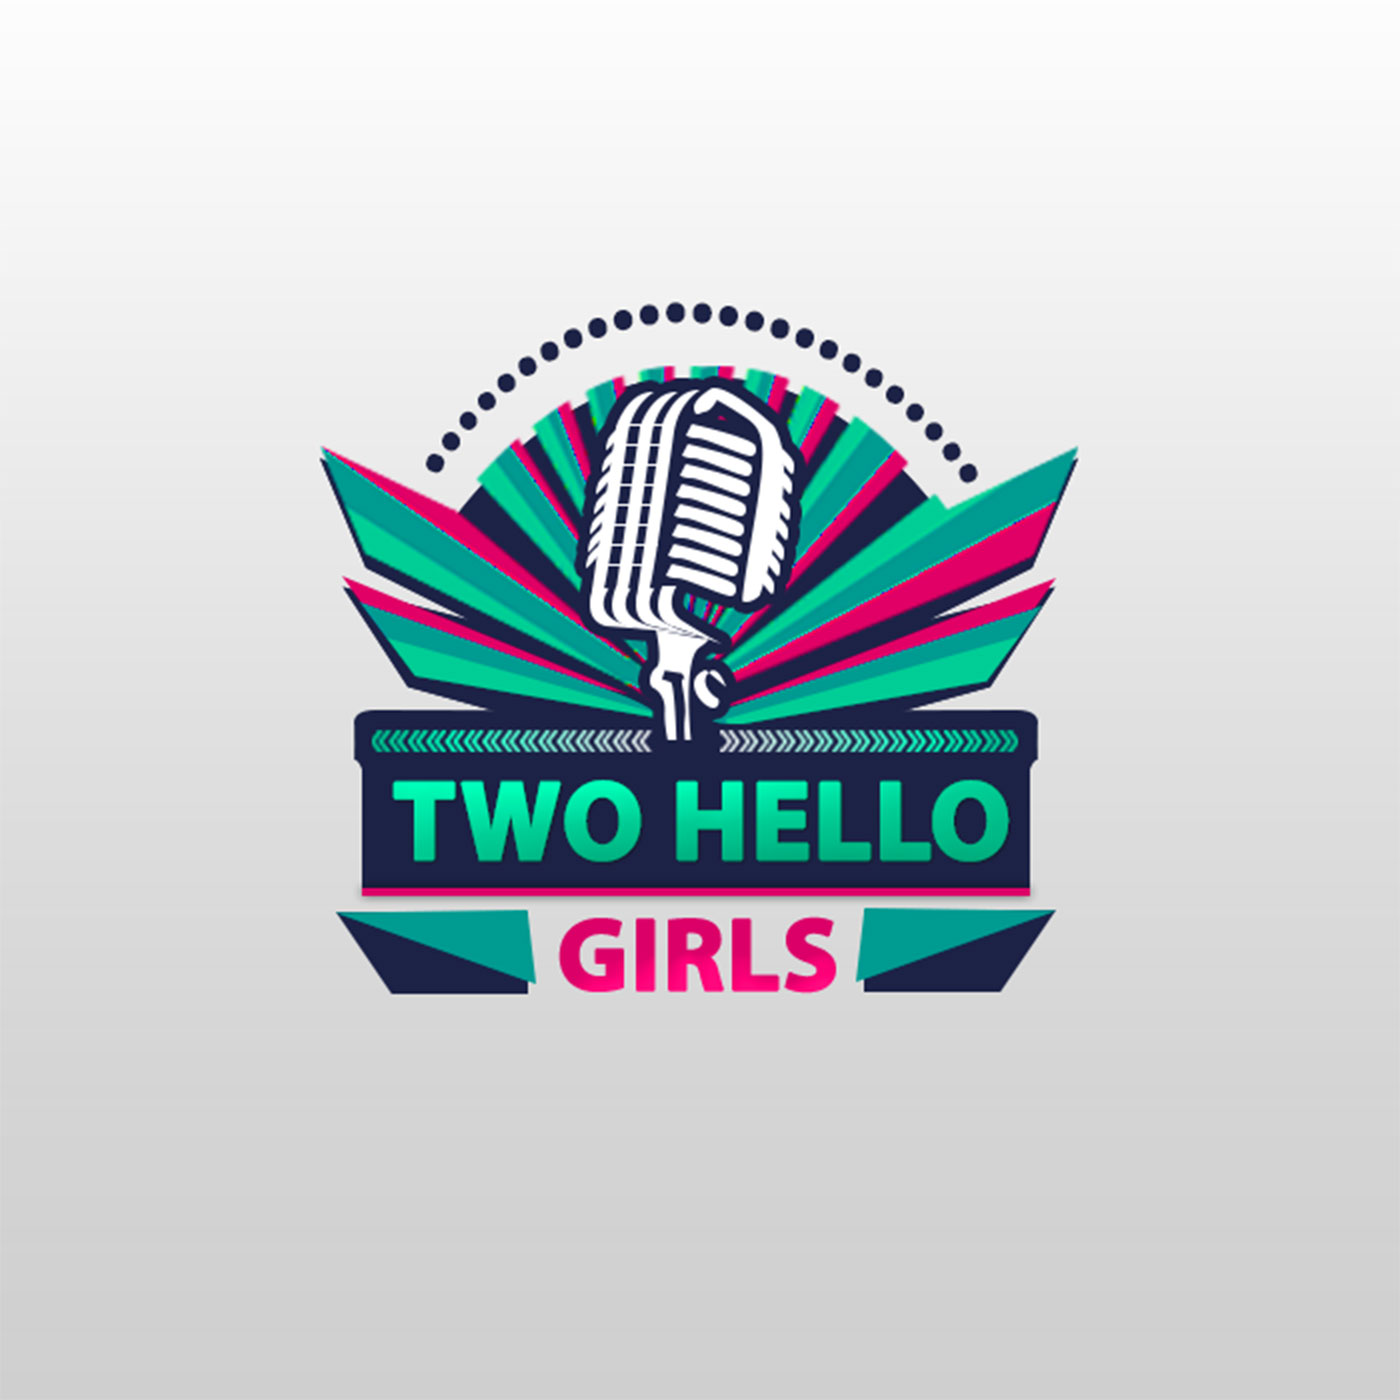 Two Hello Girls